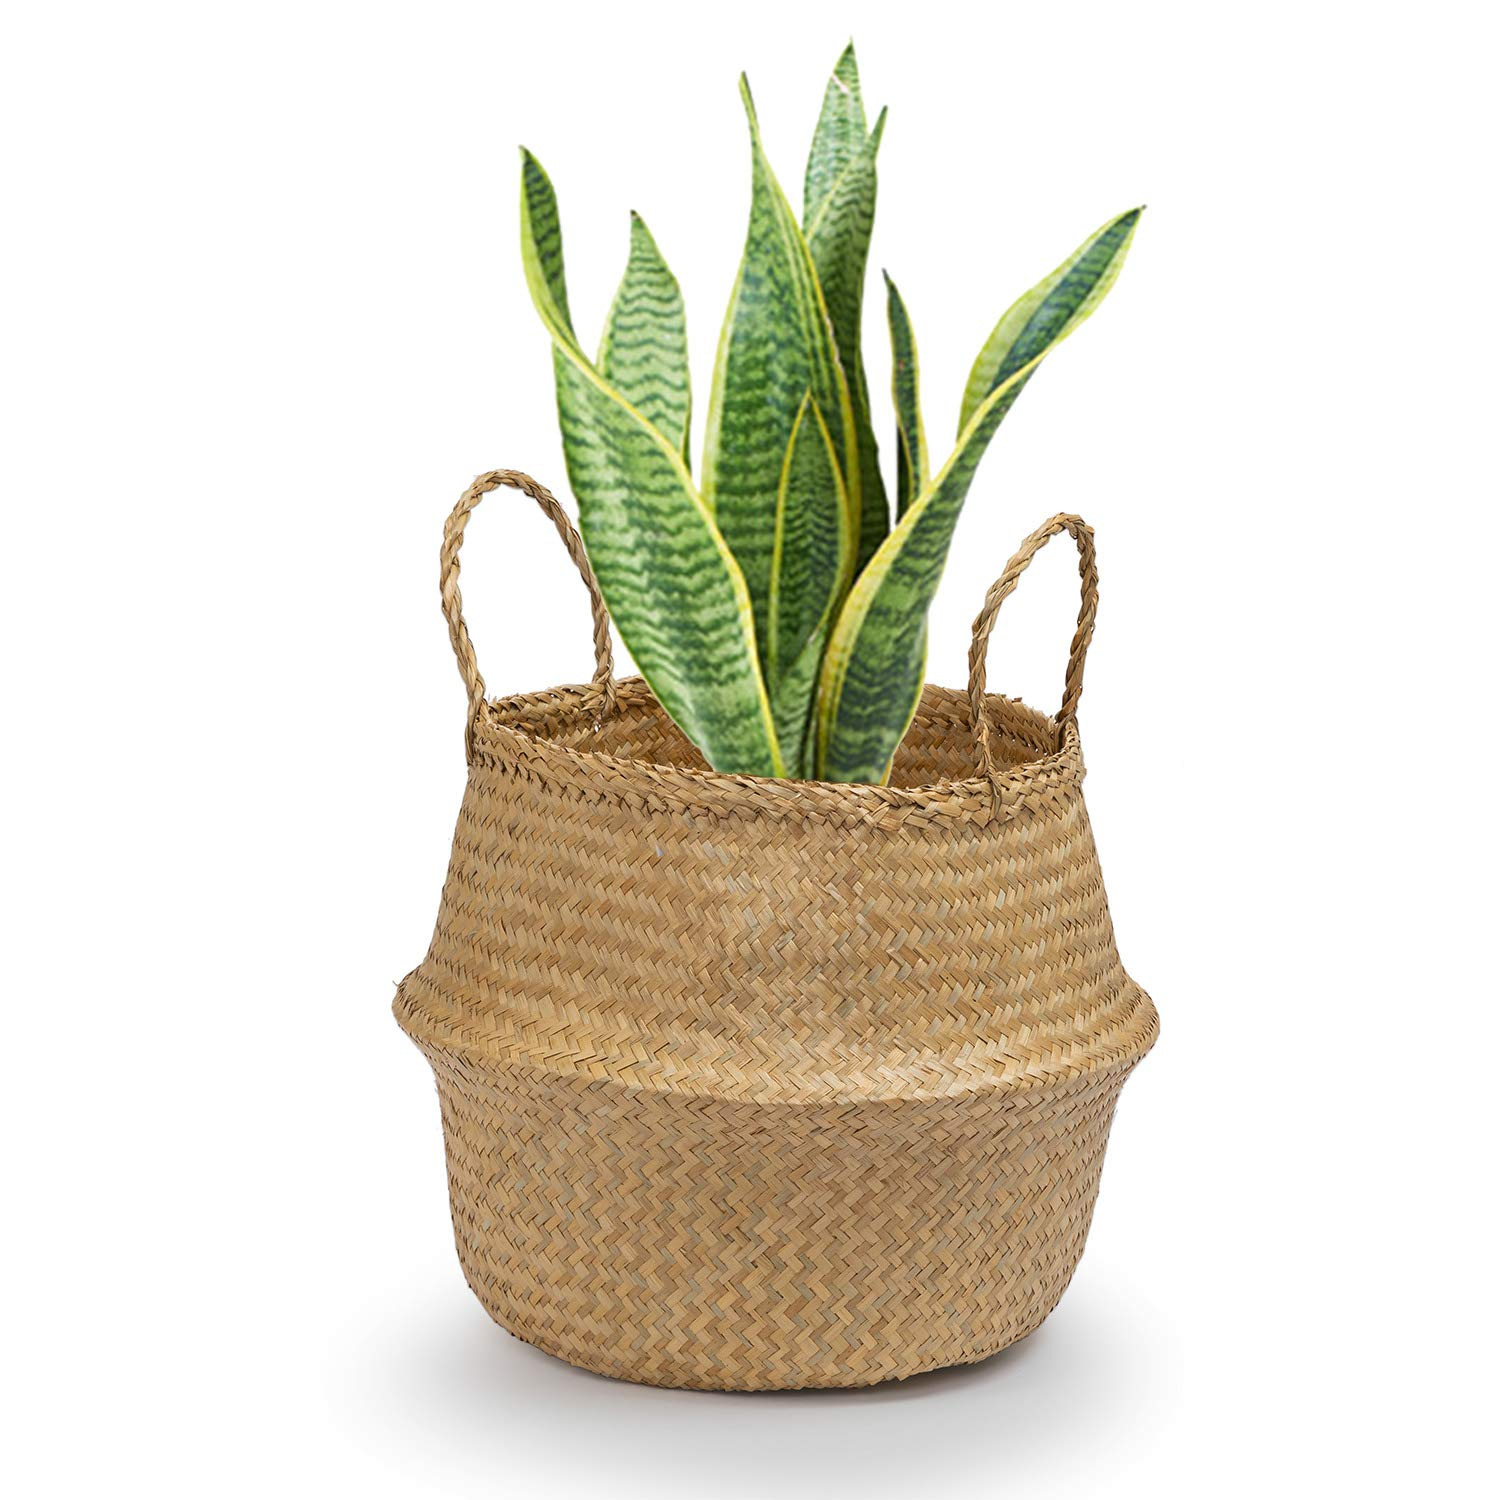 Natural, Medium Decorative Woven Basket by Toma Design Toys or Laundry Plant Holder Seagrass Round Basket with Handles Picnic Basket or Indoor Storage for Blankets